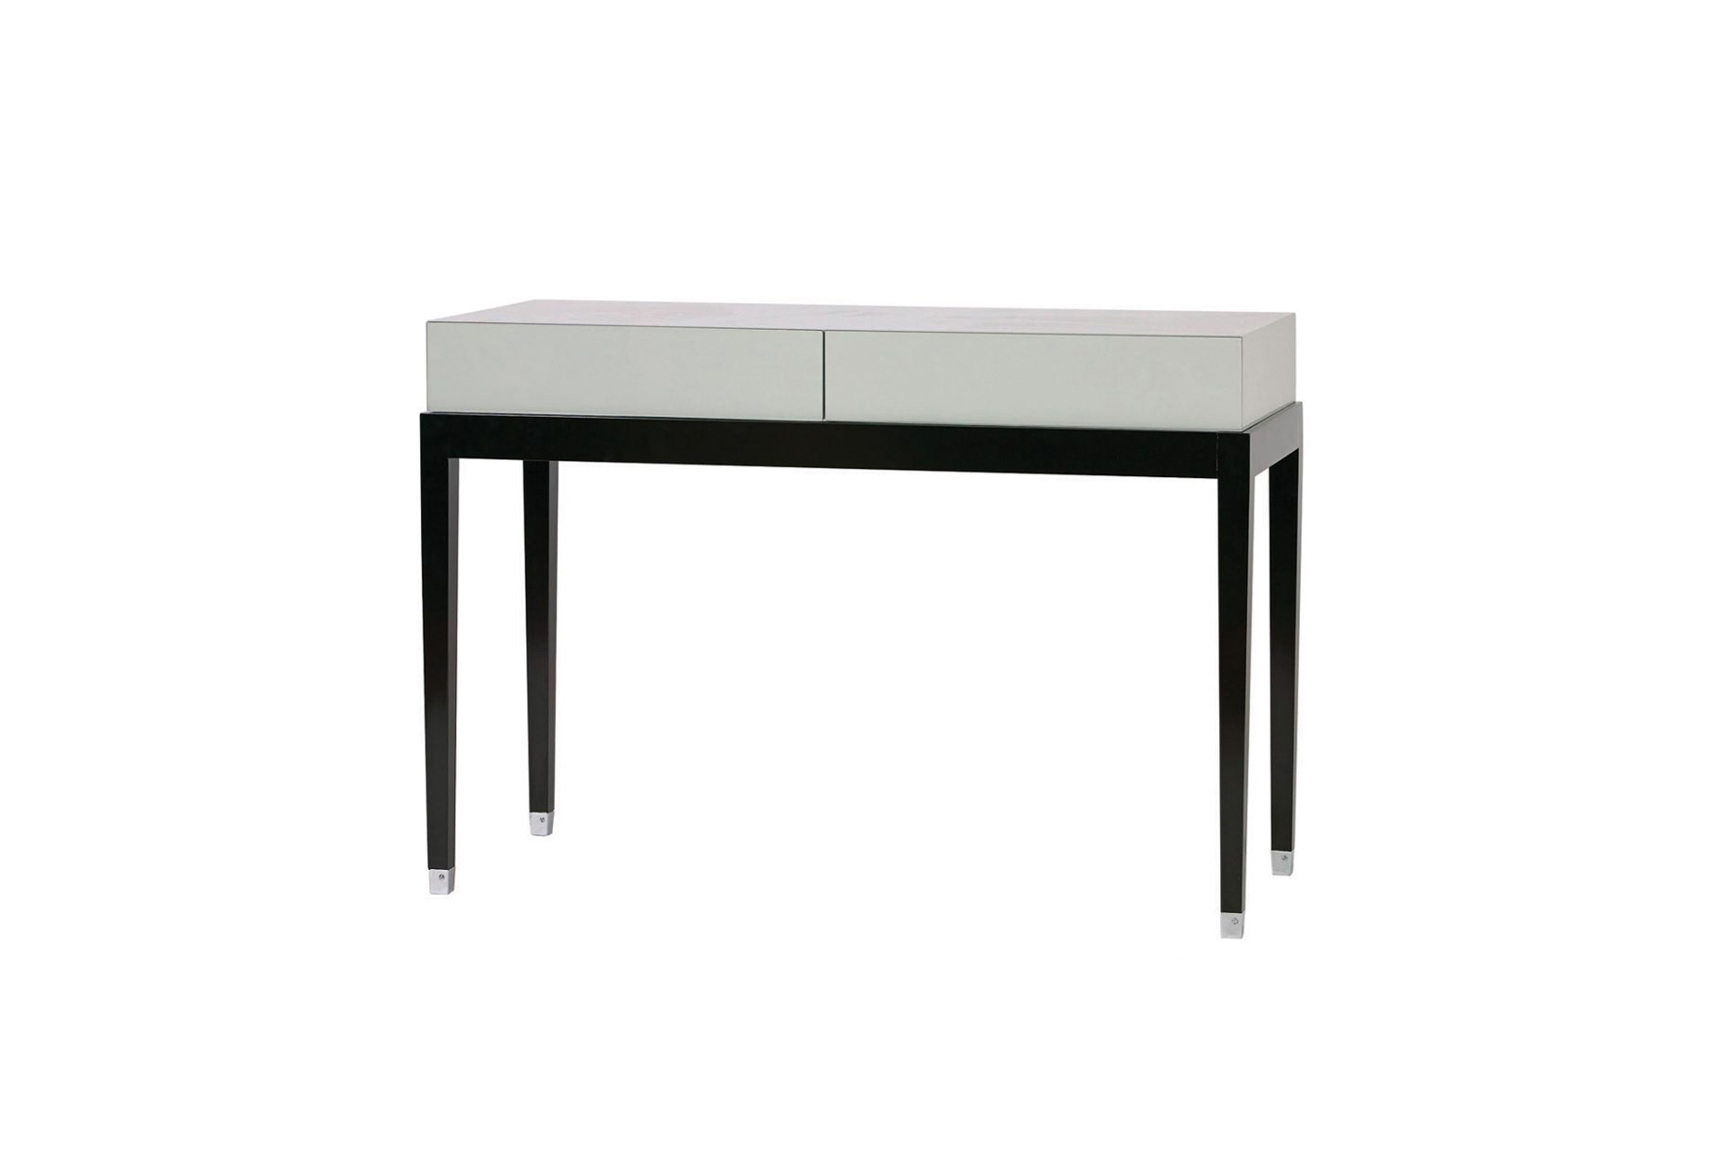 Console Tables Archives – Jan Cavelle Inside Archive Grey Console Tables (View 9 of 20)